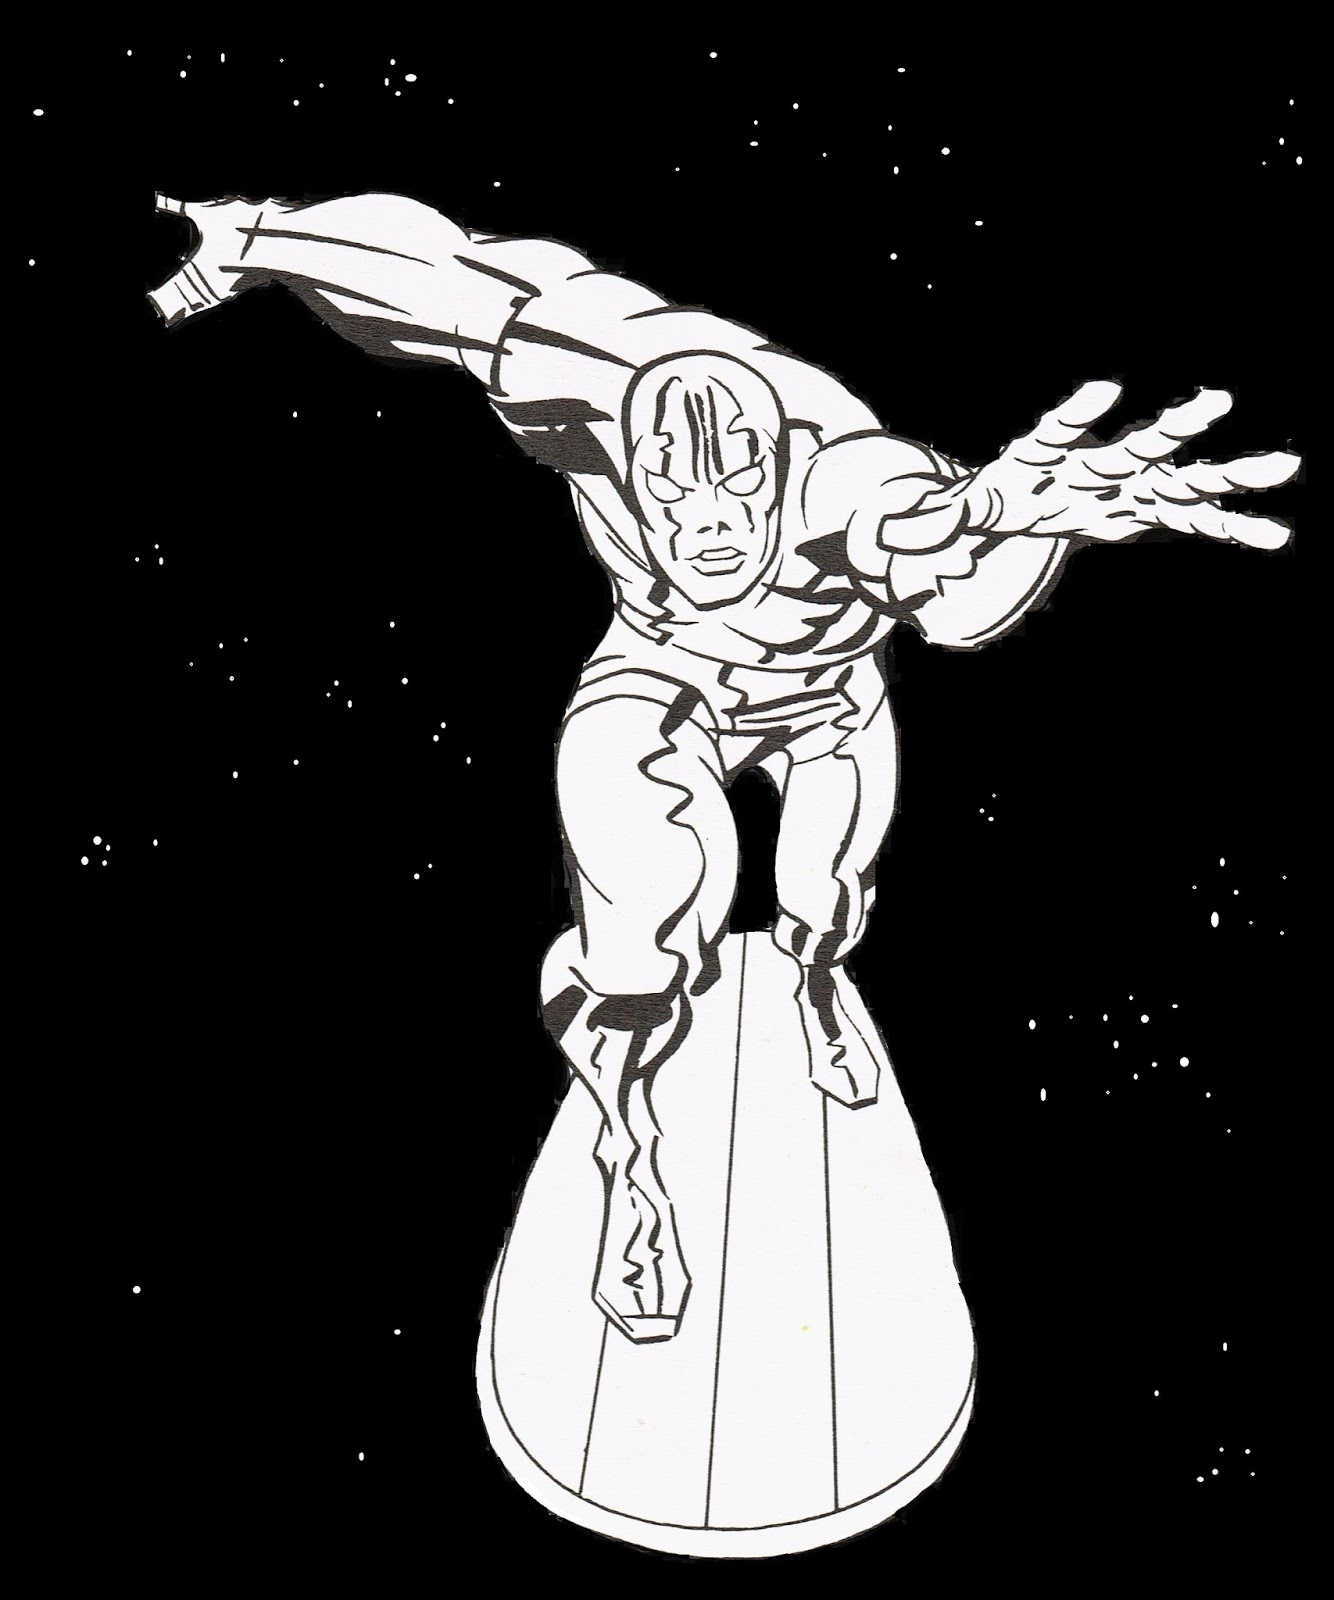 capns comics the silver surfer by jack kirby